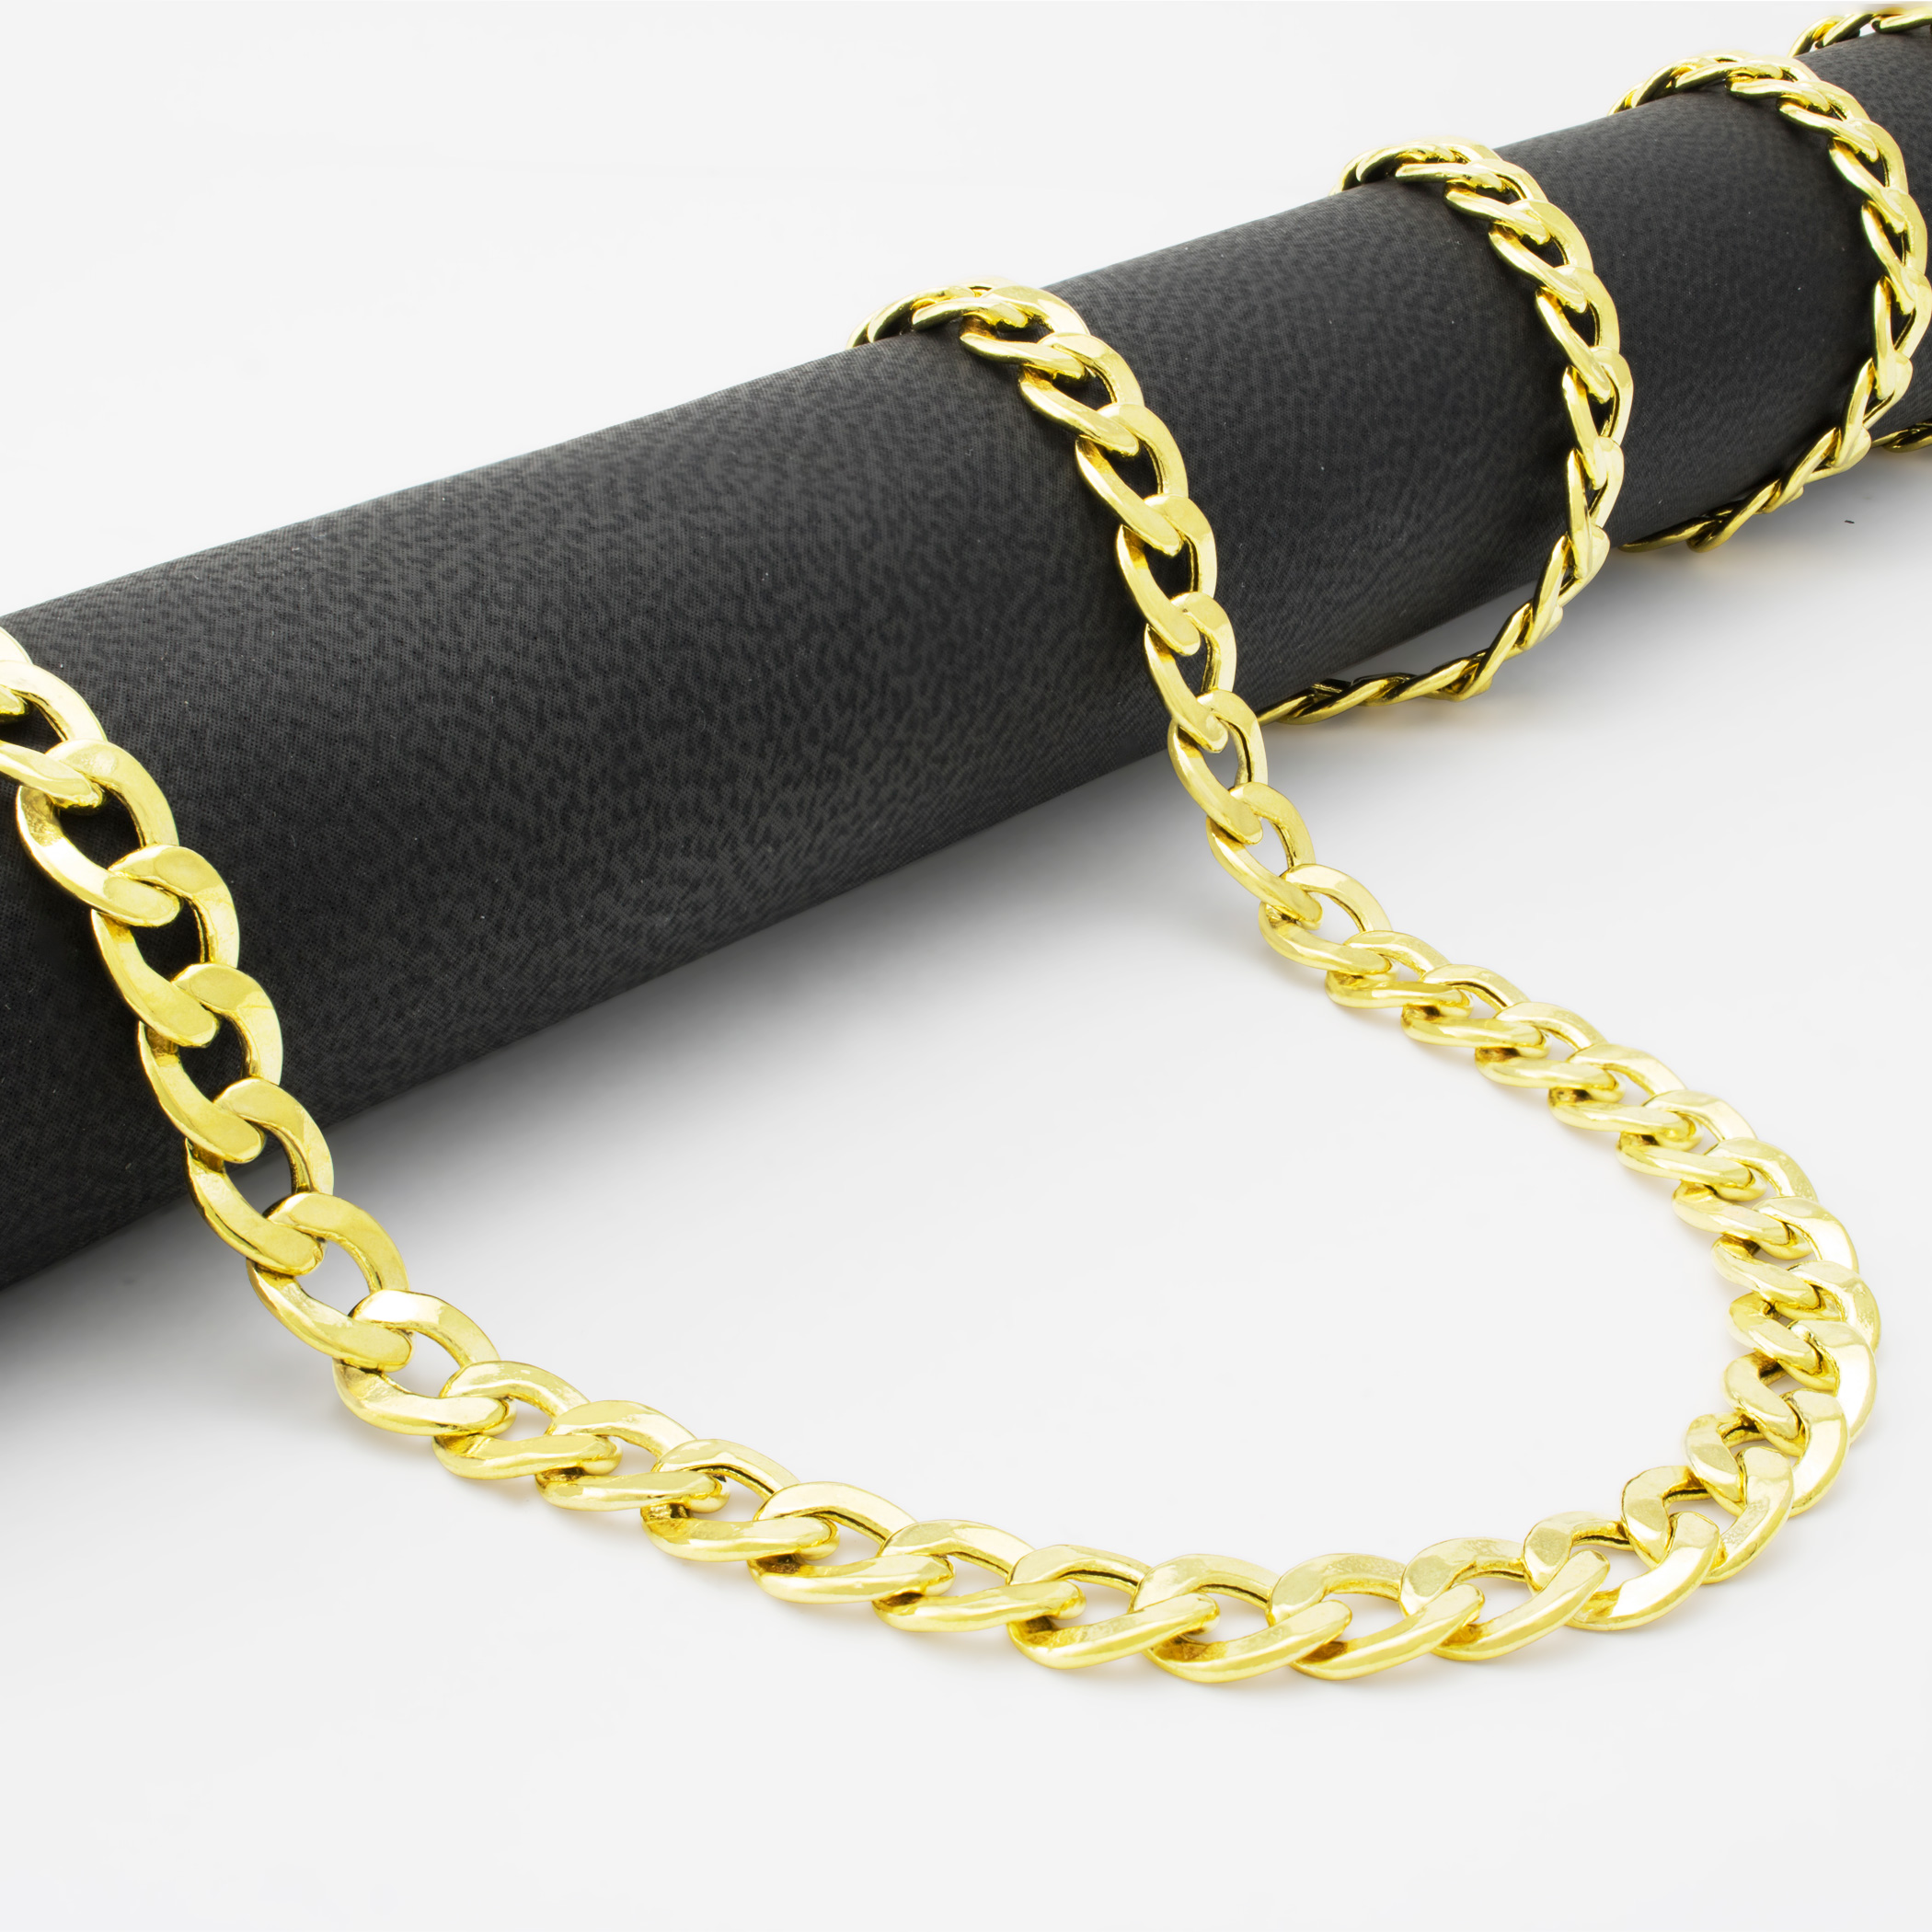 10K-Yellow-Gold-2mm-11mm-Curb-Cuban-Chain-Link-Pendant-Necklace-Bracelet-7-034-30-034 thumbnail 13